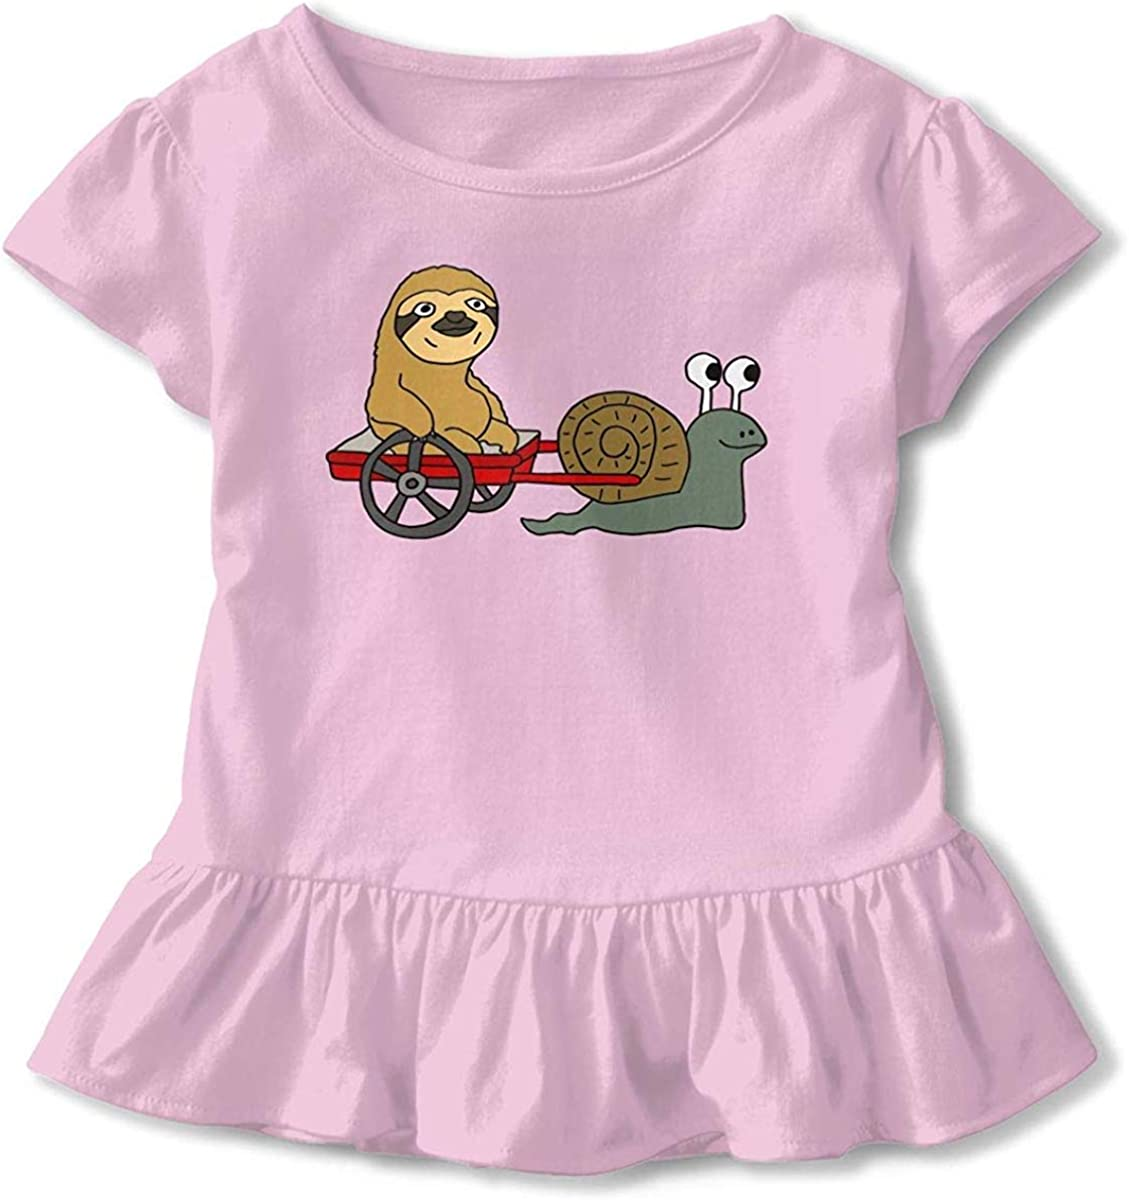 Toddler Baby Girl Funny Cool Sloth in Red Wagon Pulled by Snail Funny Short Sleeve Cotton T Shirts Basic Tops Tee Clothes